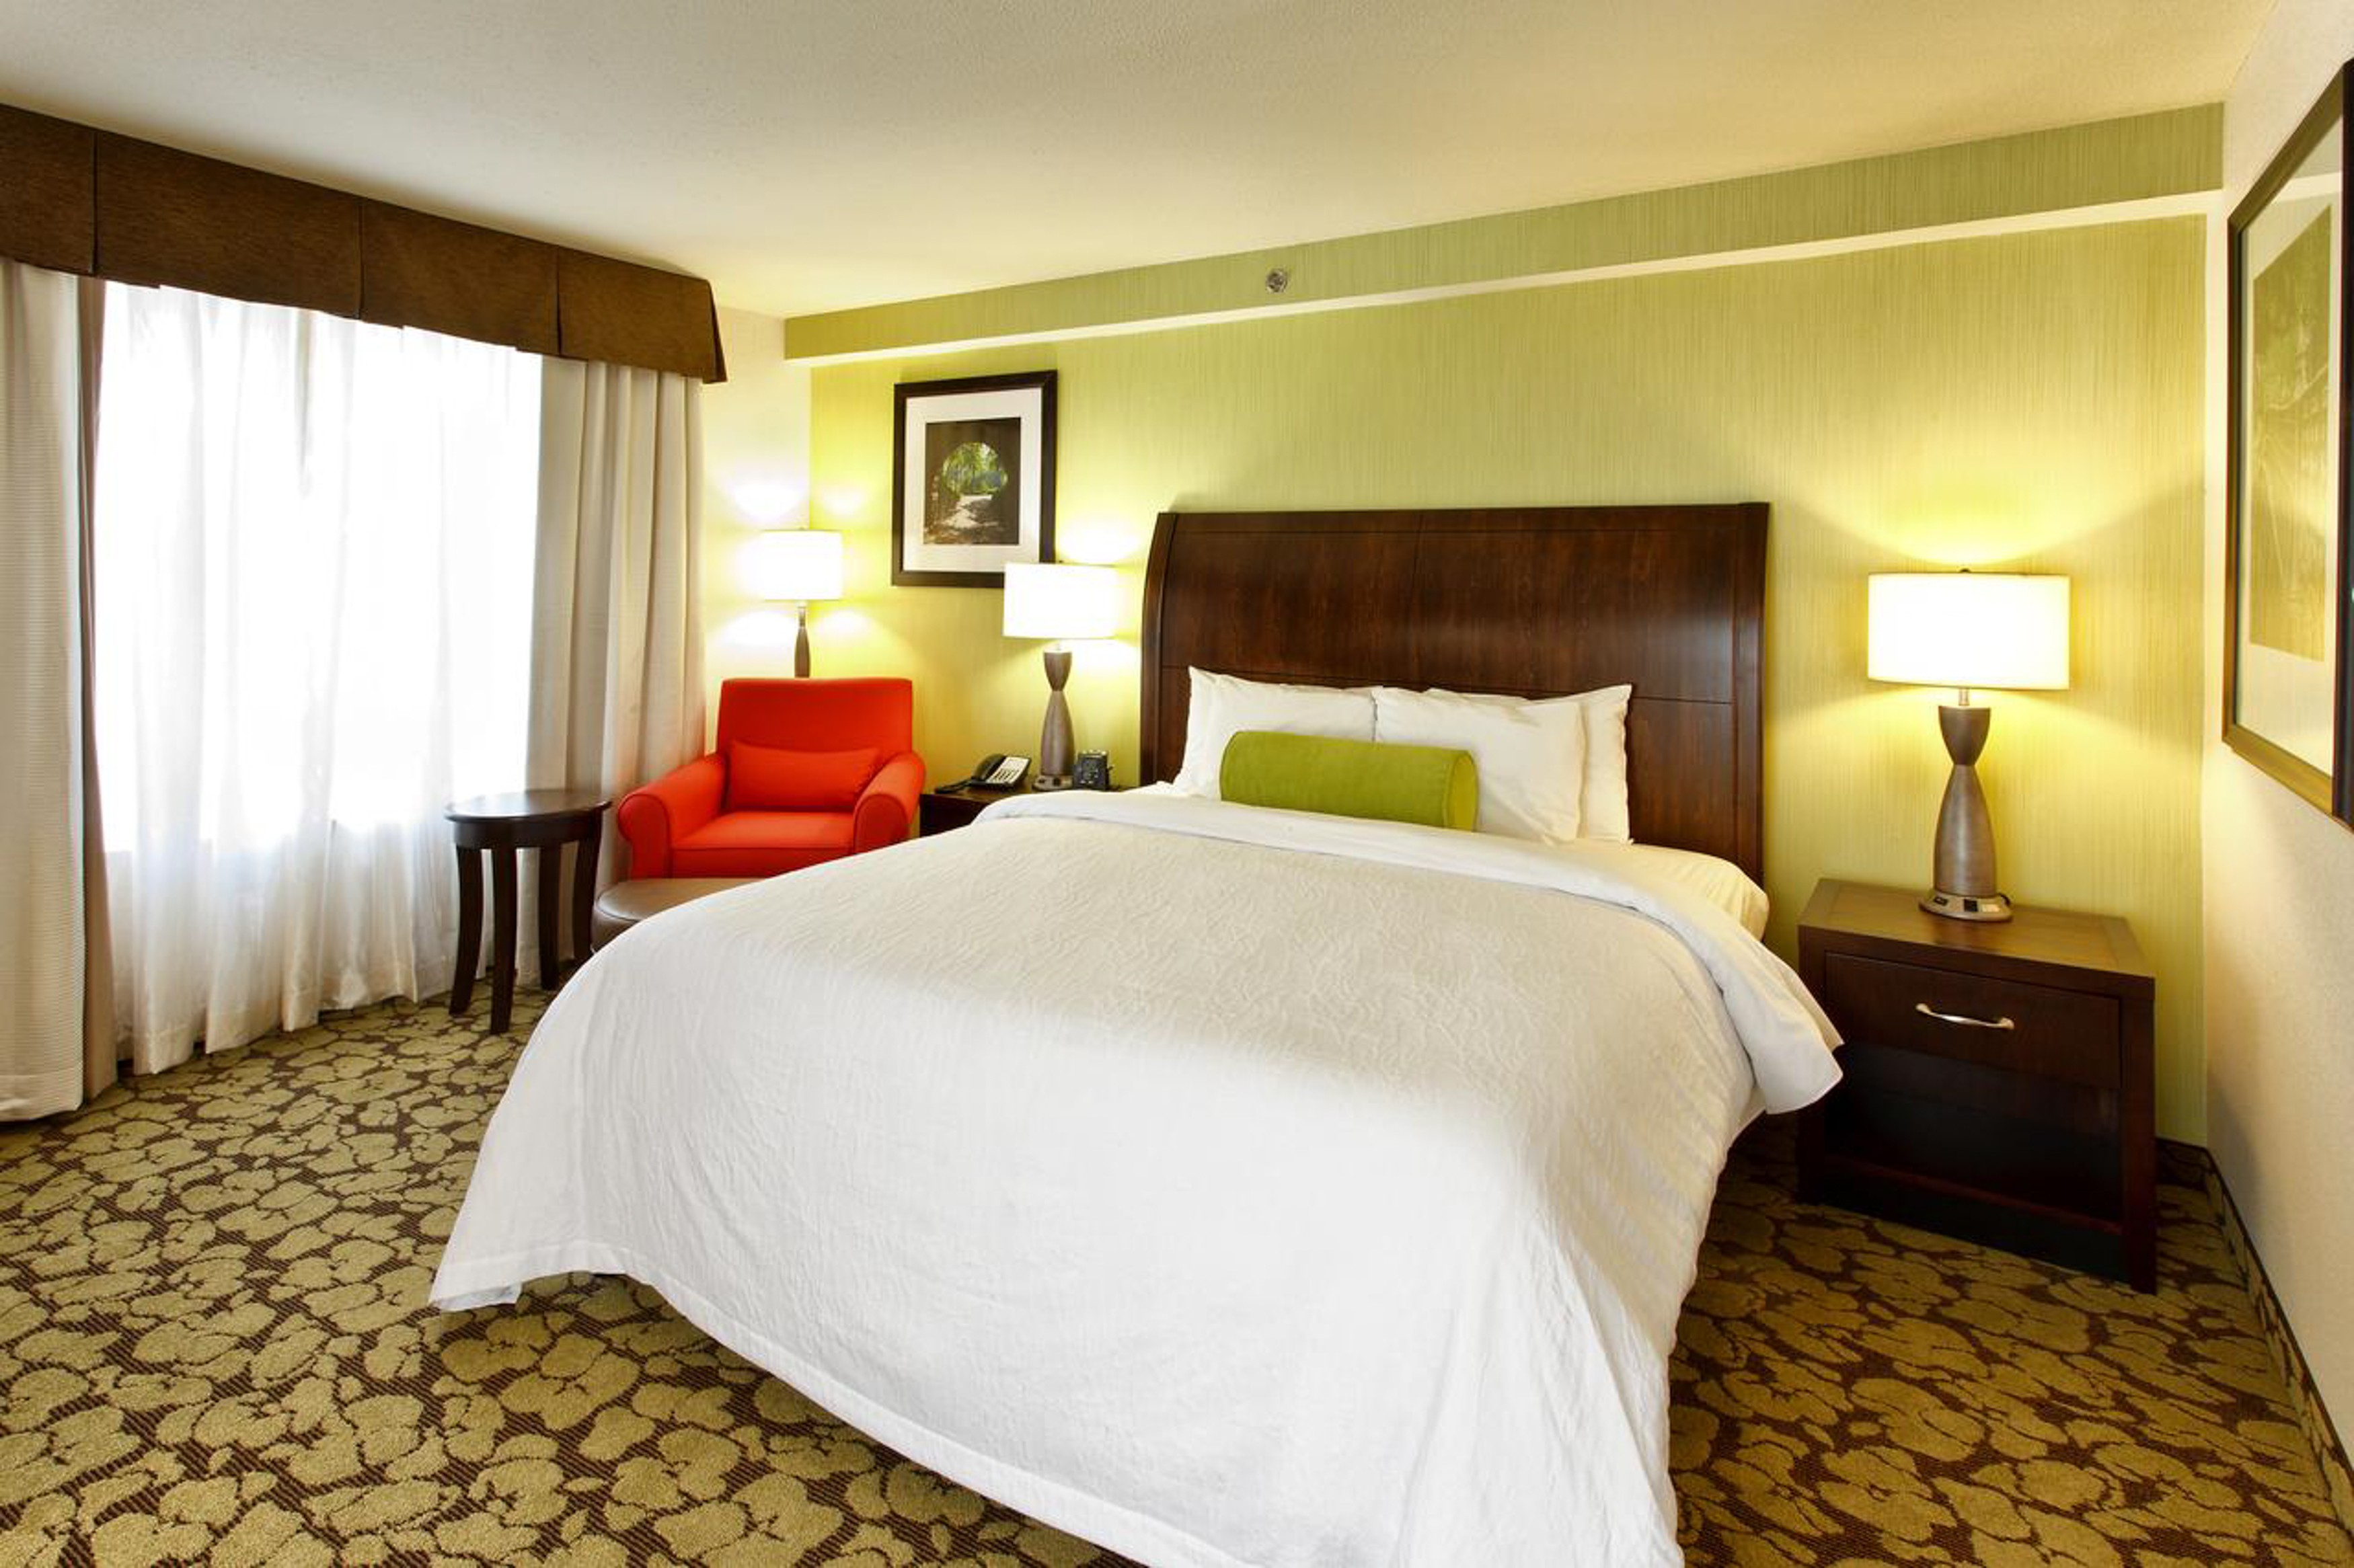 © Hilton Garden Inn New York / Staten Island / Booking.com